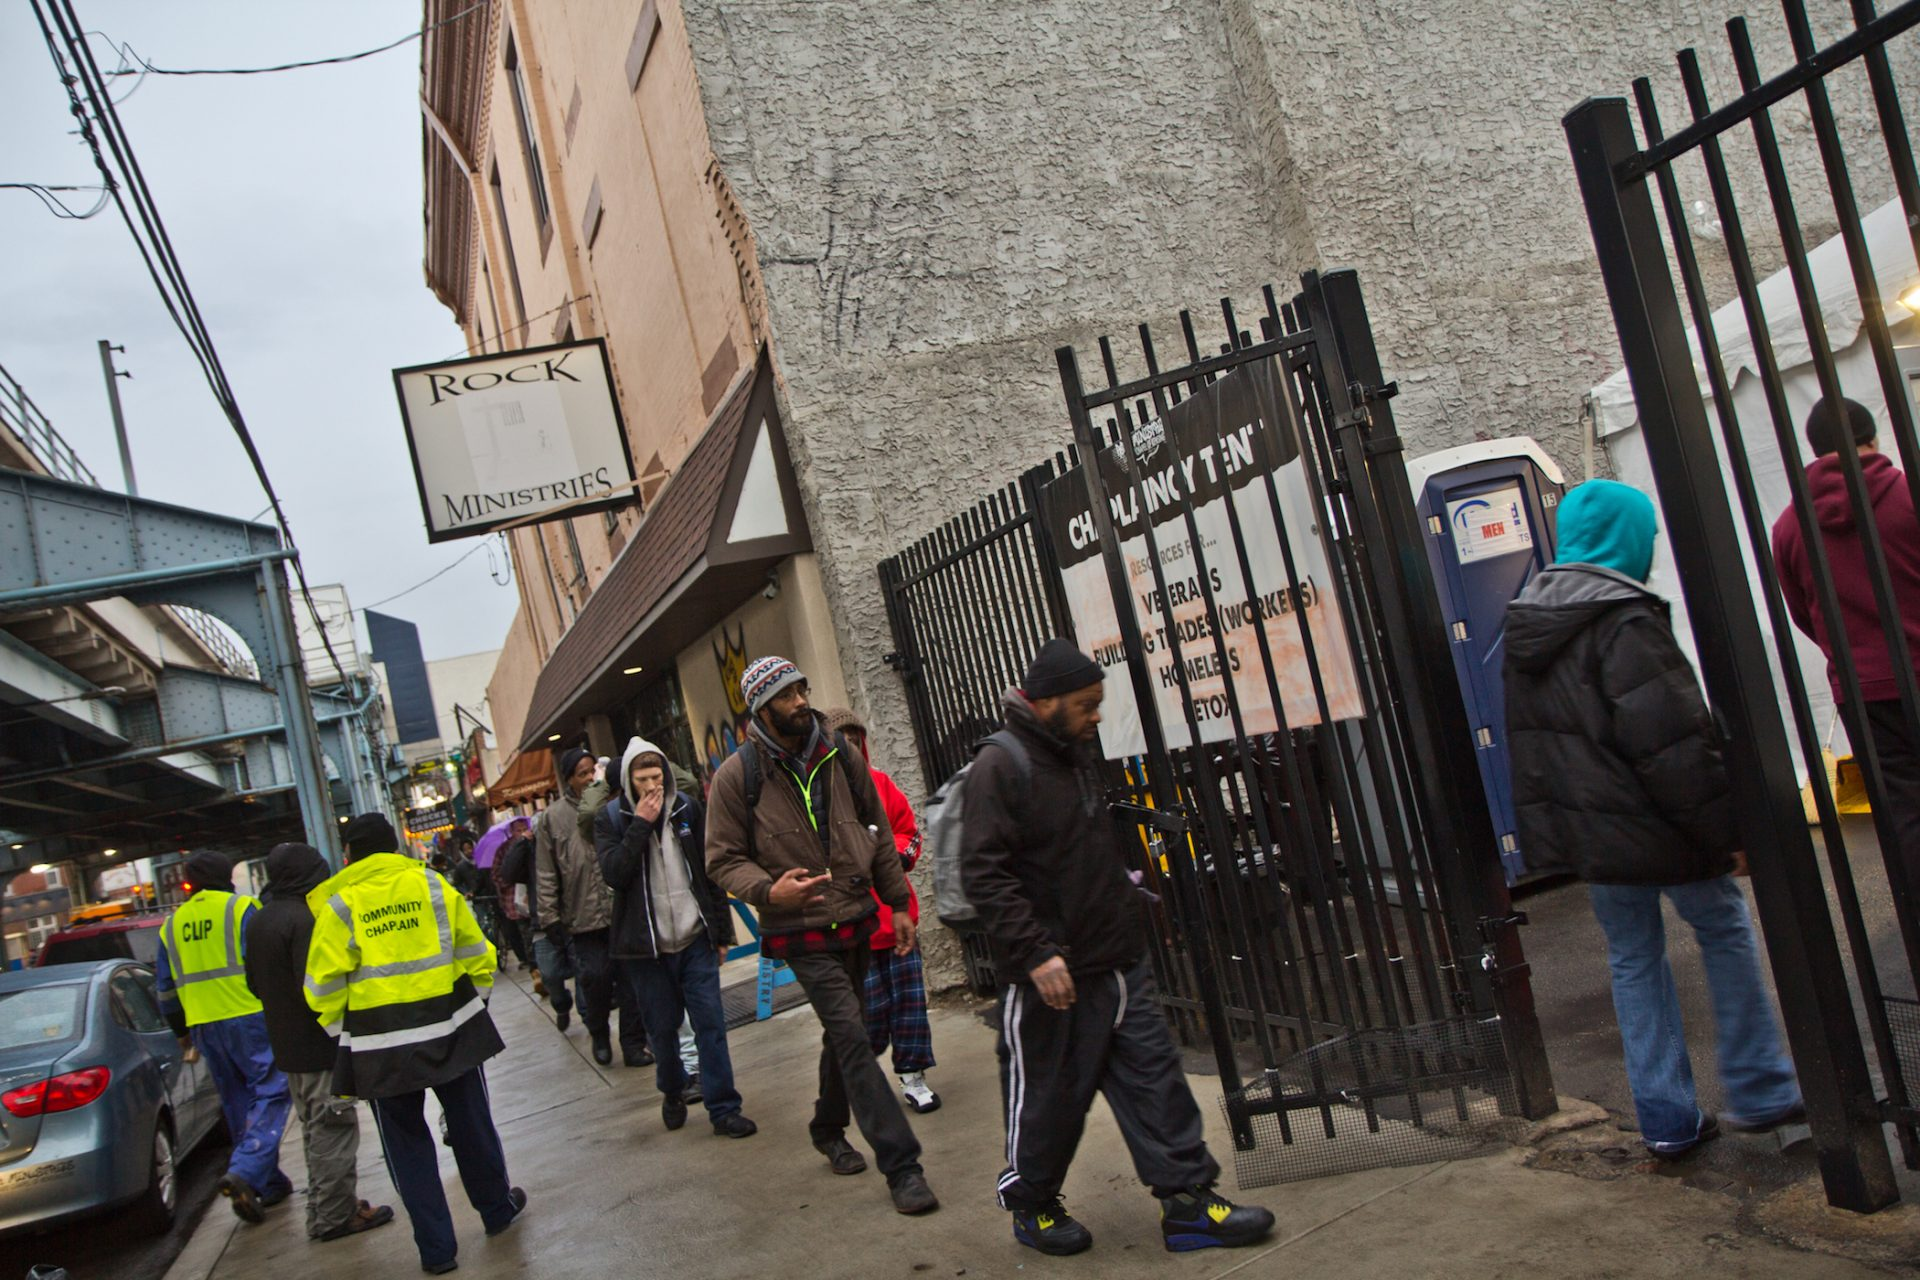 About 30 people wait in line for the chance for a day of work through the city of Philadelphia's Work-to-Earn program.